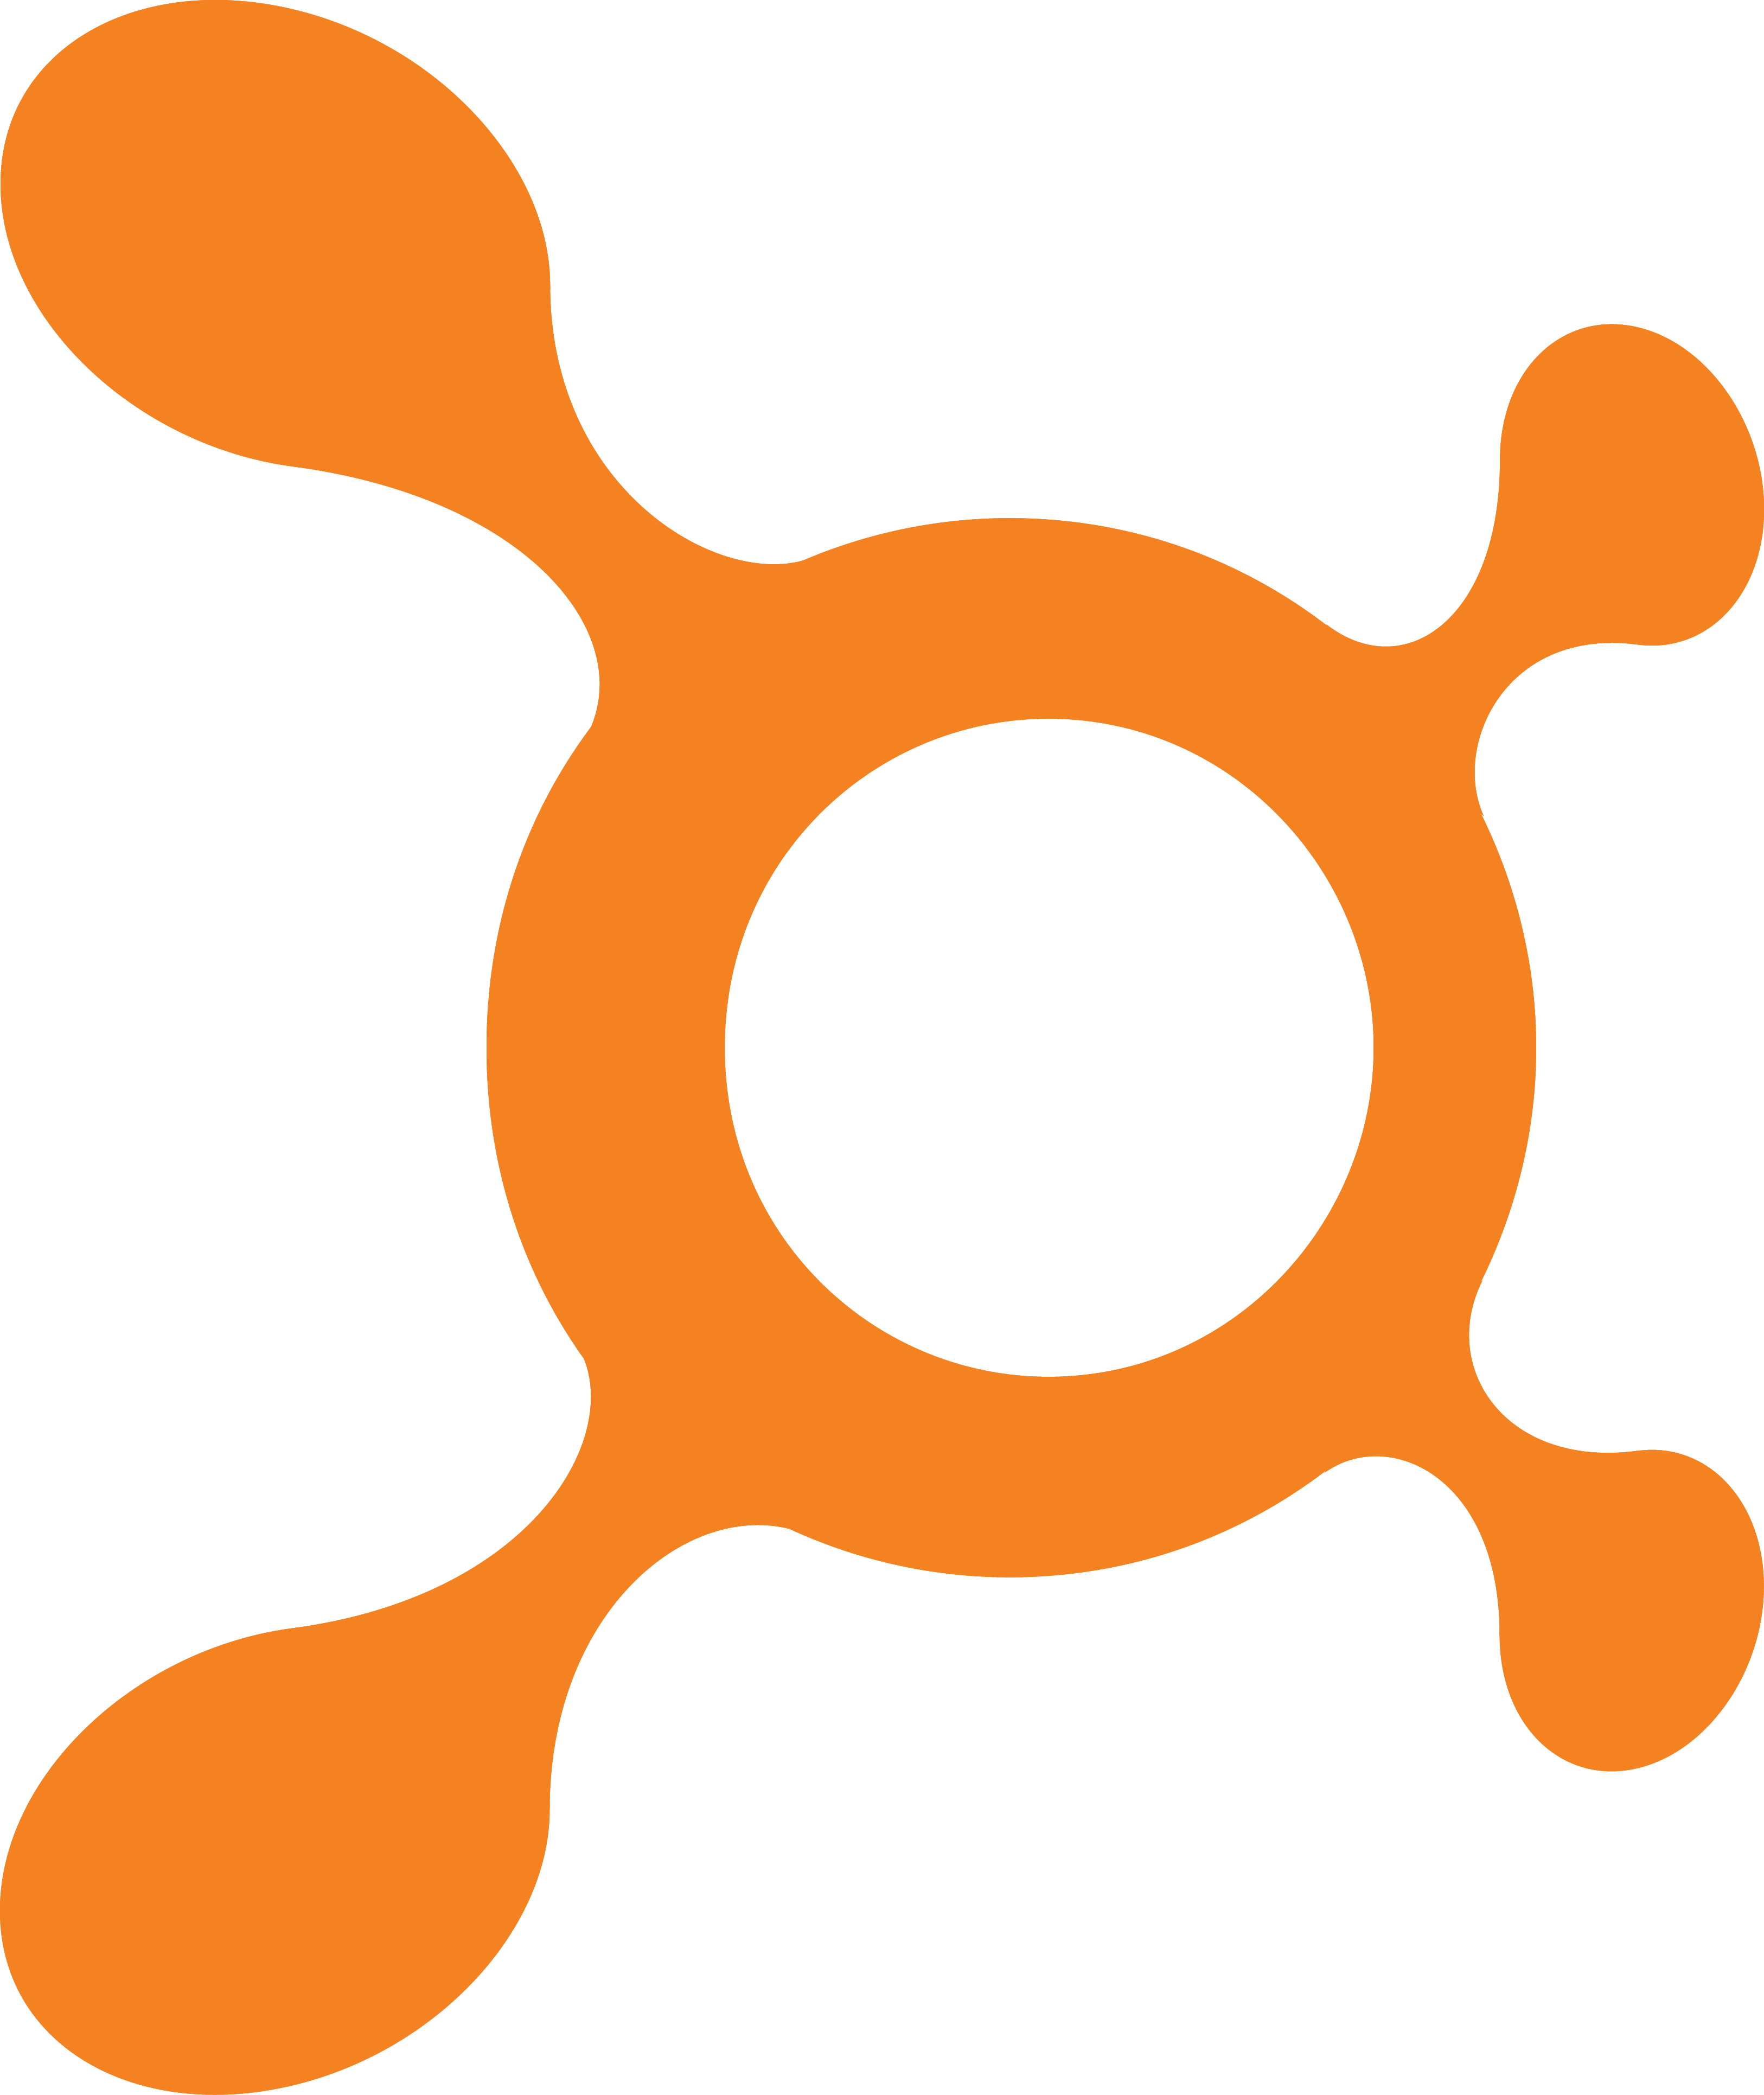 Orange Logo Splat Png image #38299